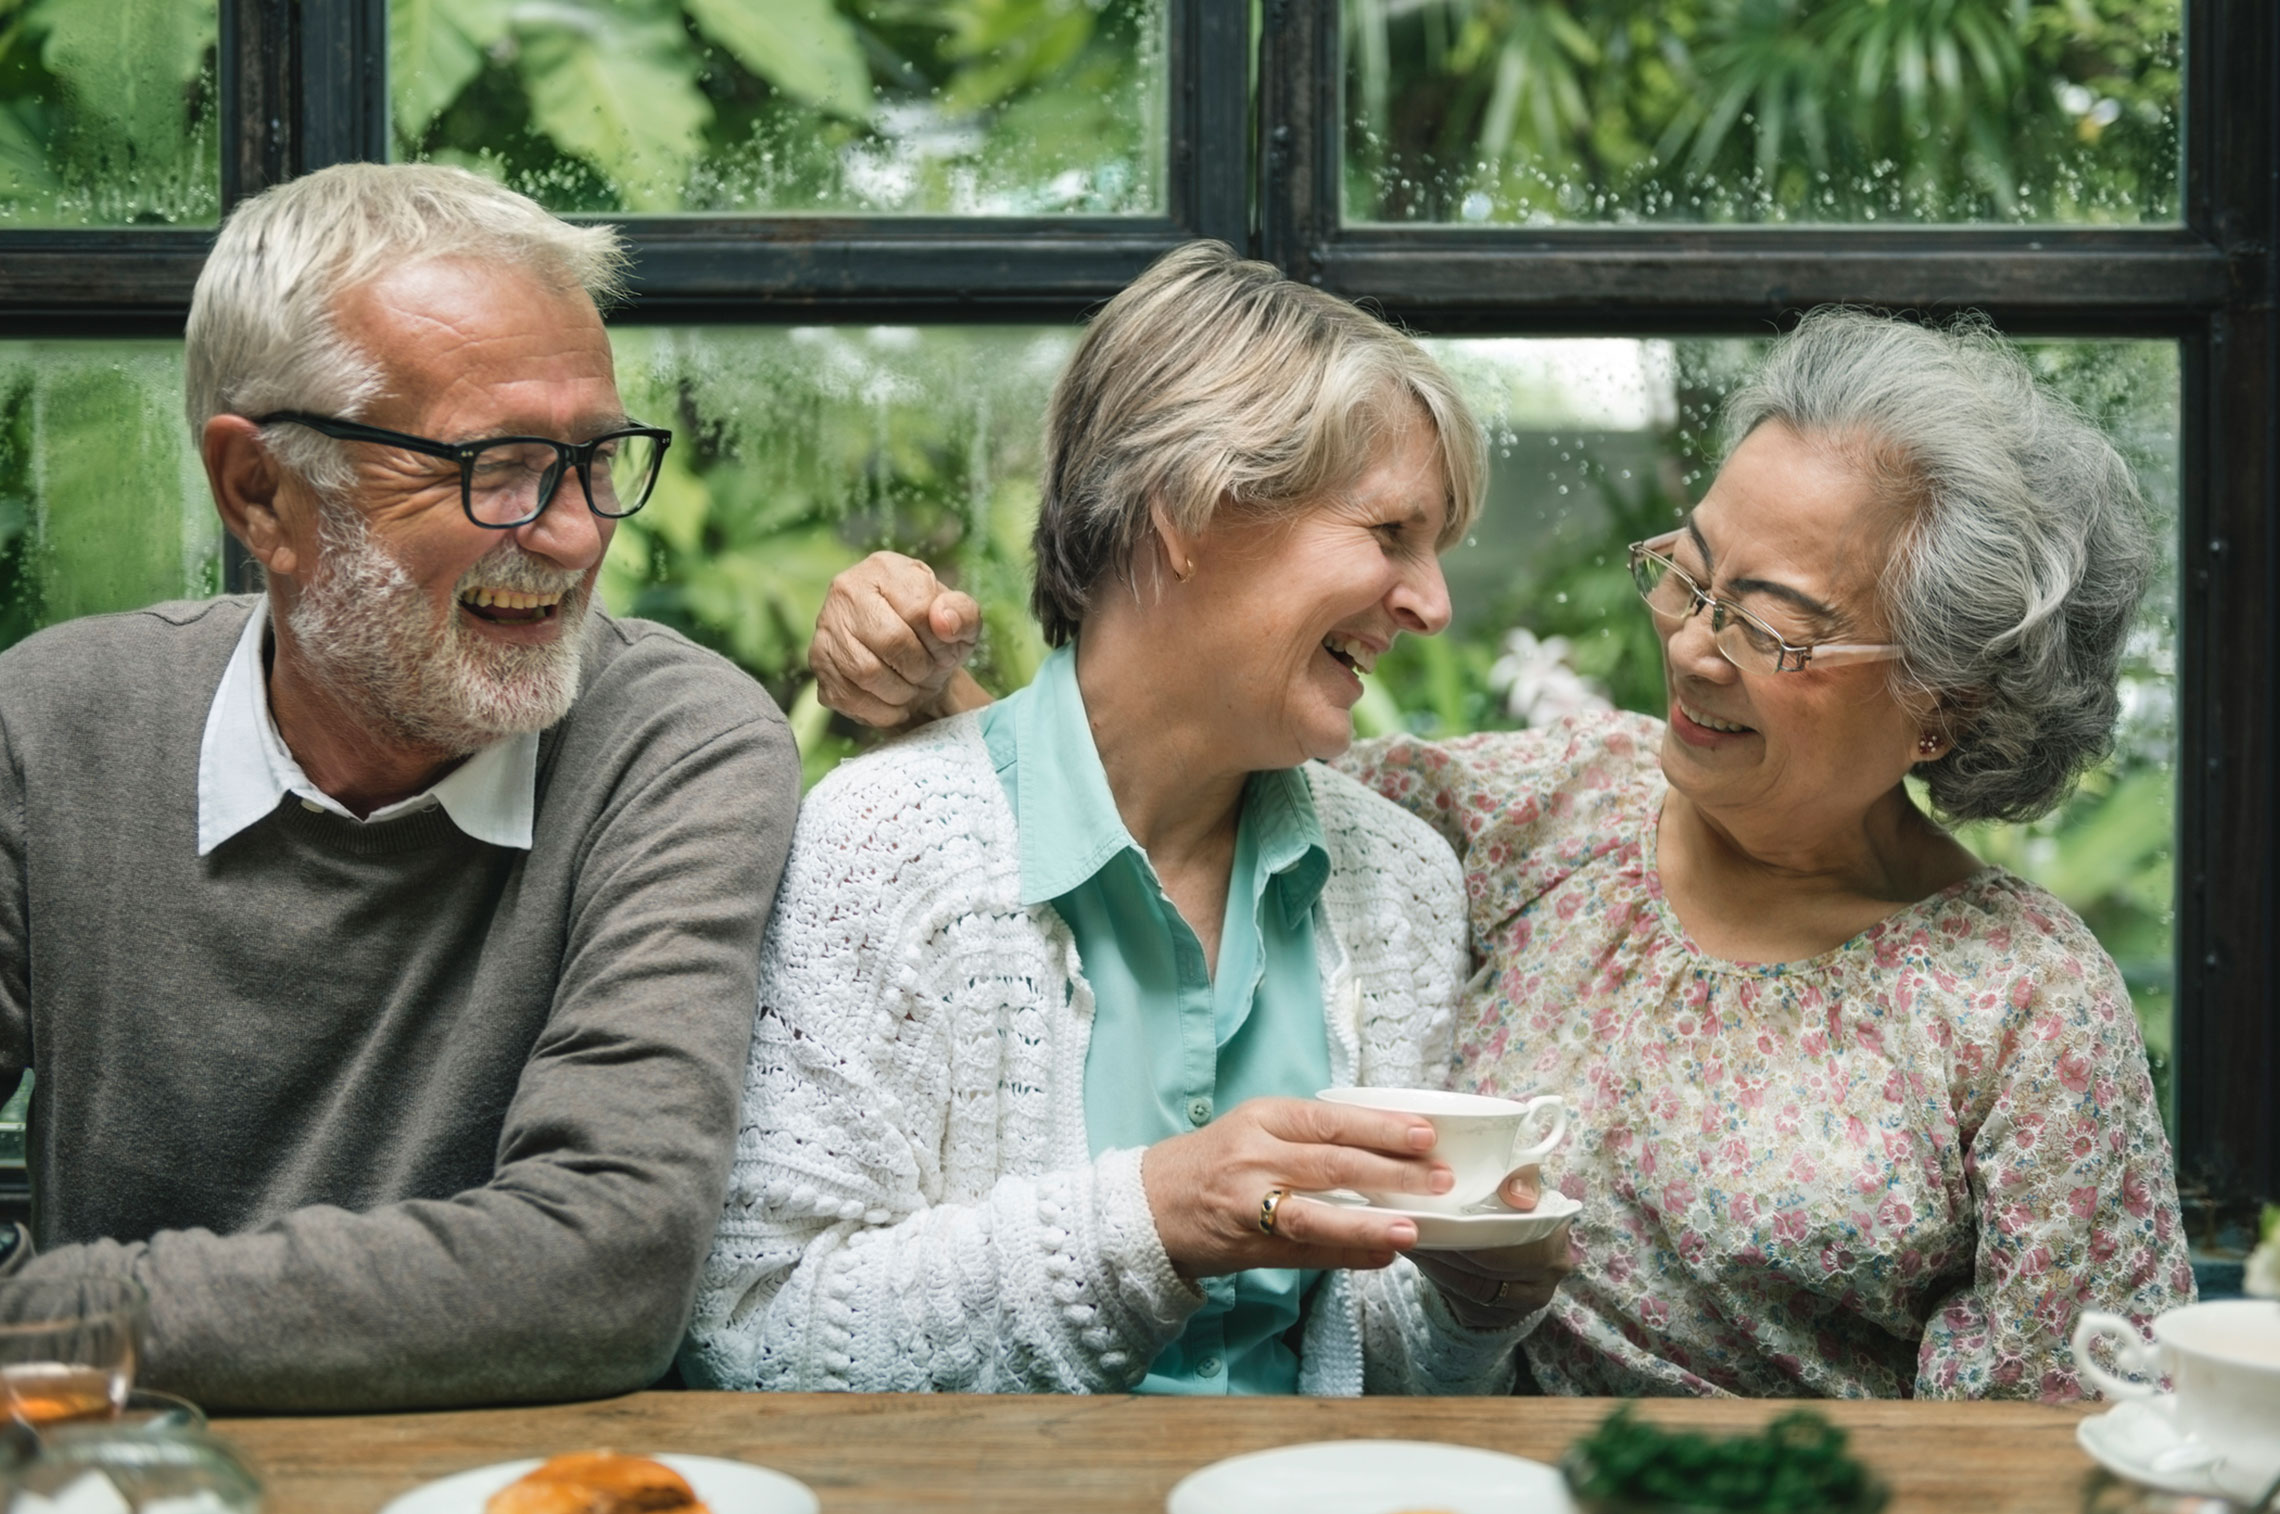 How to Make New Friends in Retirement